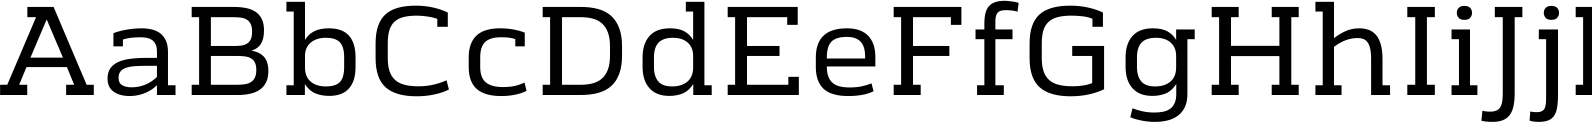 Chercher Regular Font